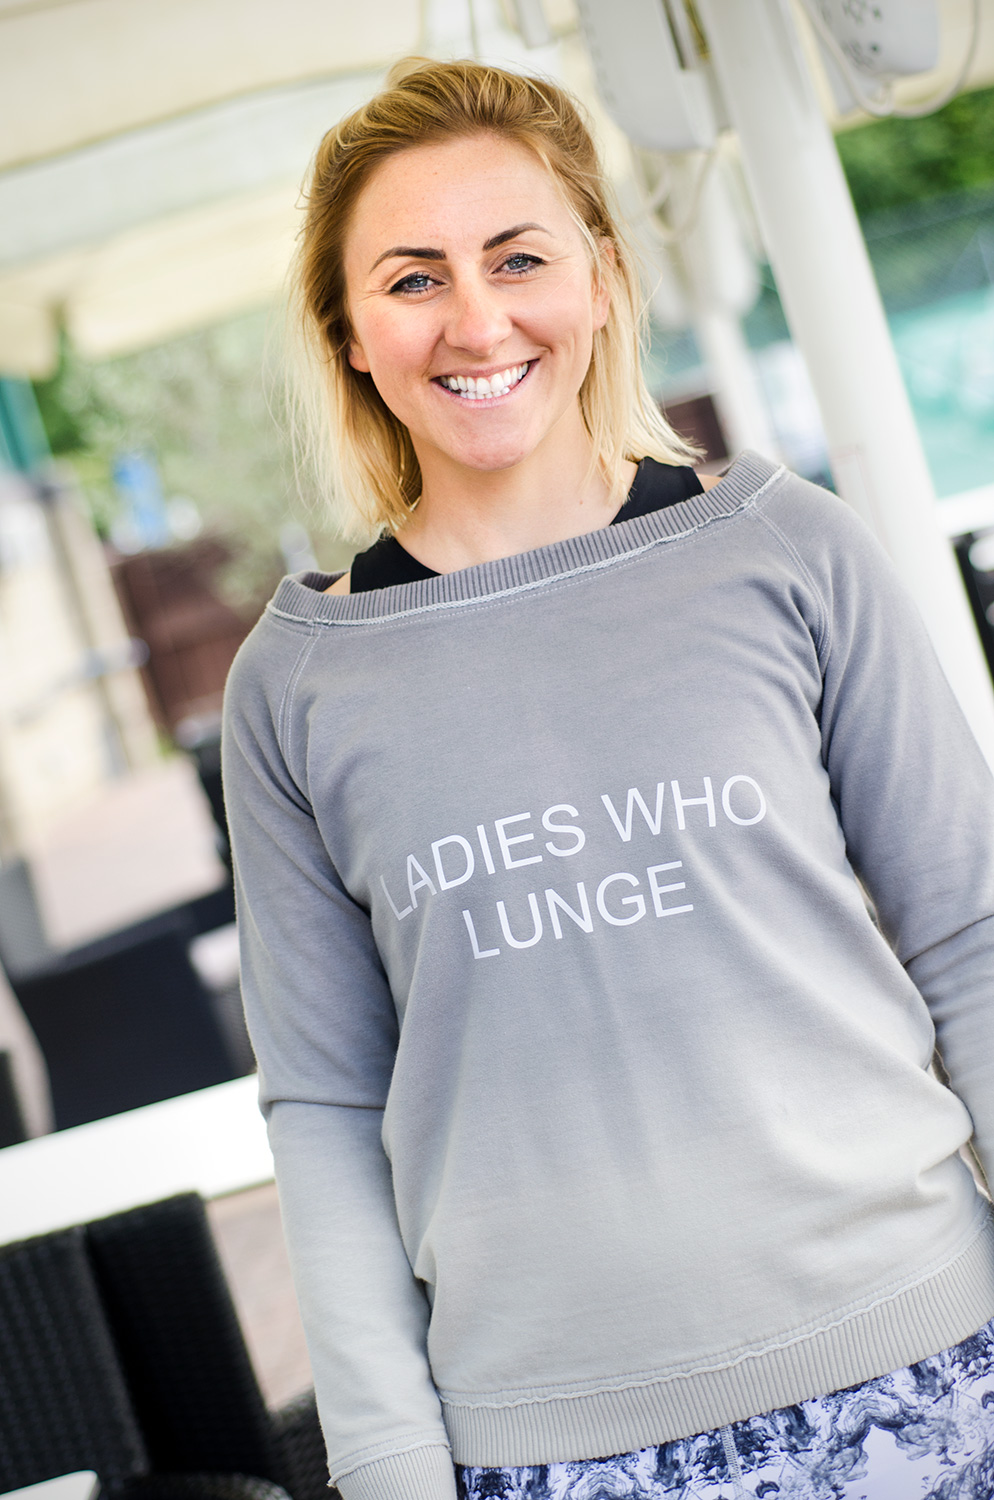 'LADIES WHO LUNGE' Sweatshirt: Extra Large